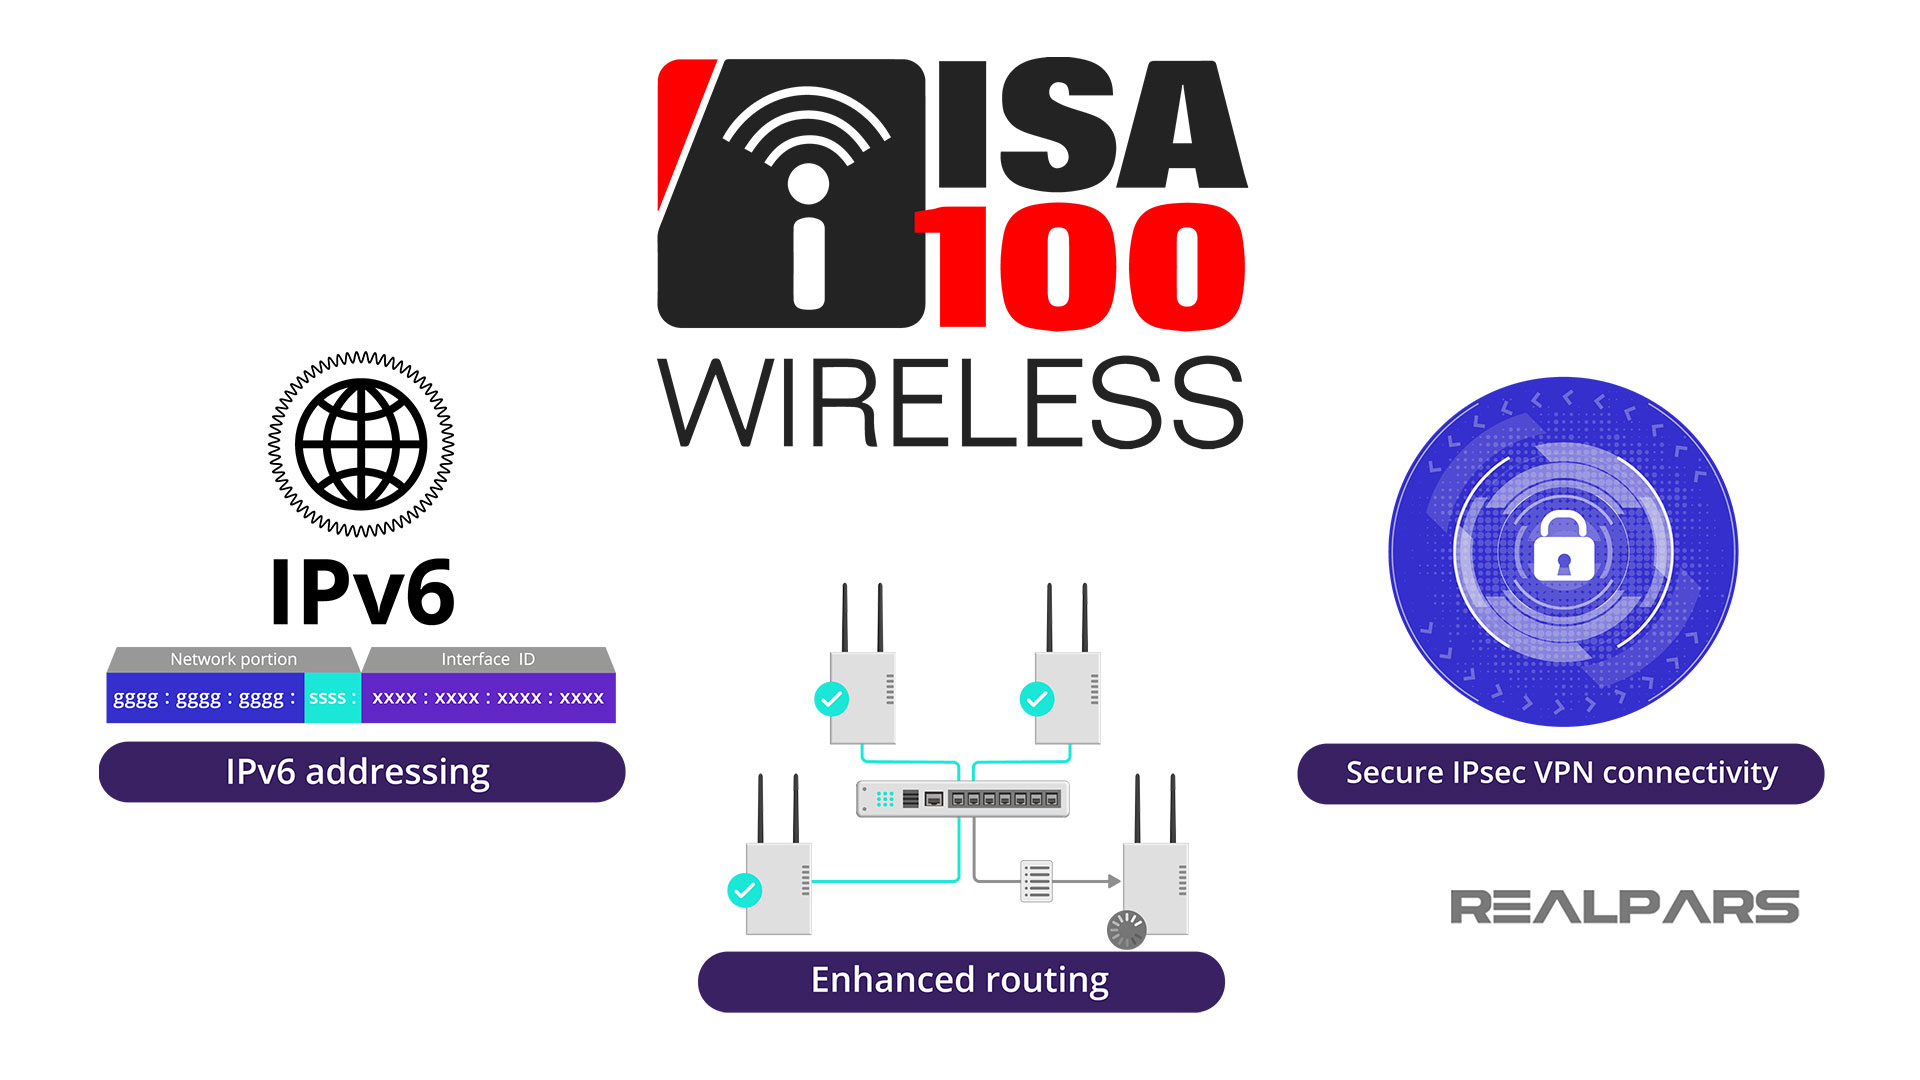 IIoT integration with IPv6 Enhanced Routing Ipsec Security Features